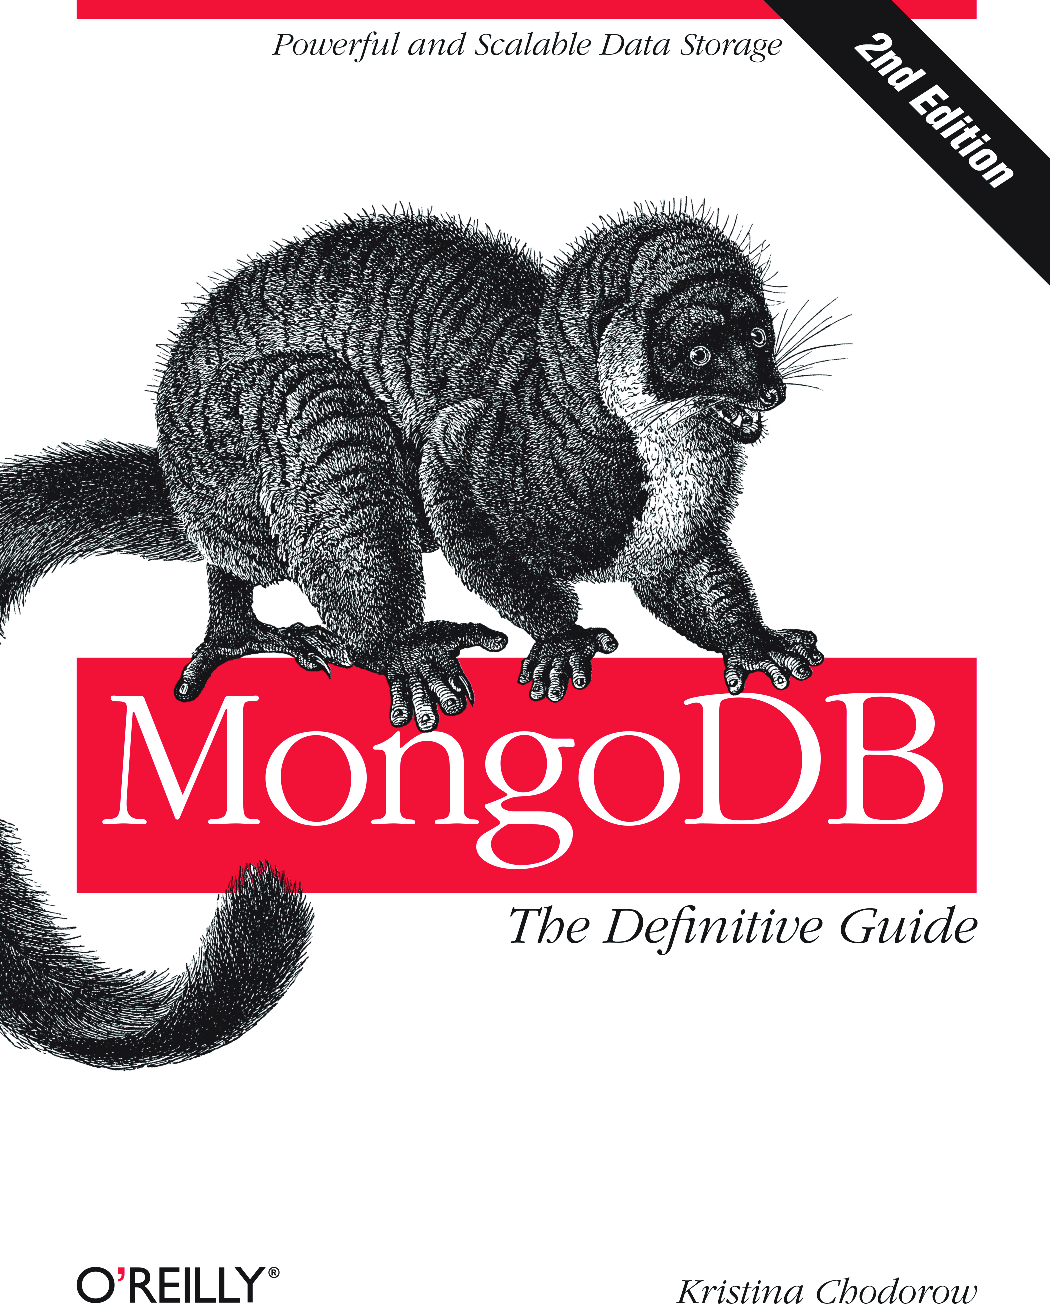 MongoDB: The Definitive Guide, Second Edition Mongo DB Guide 2nd